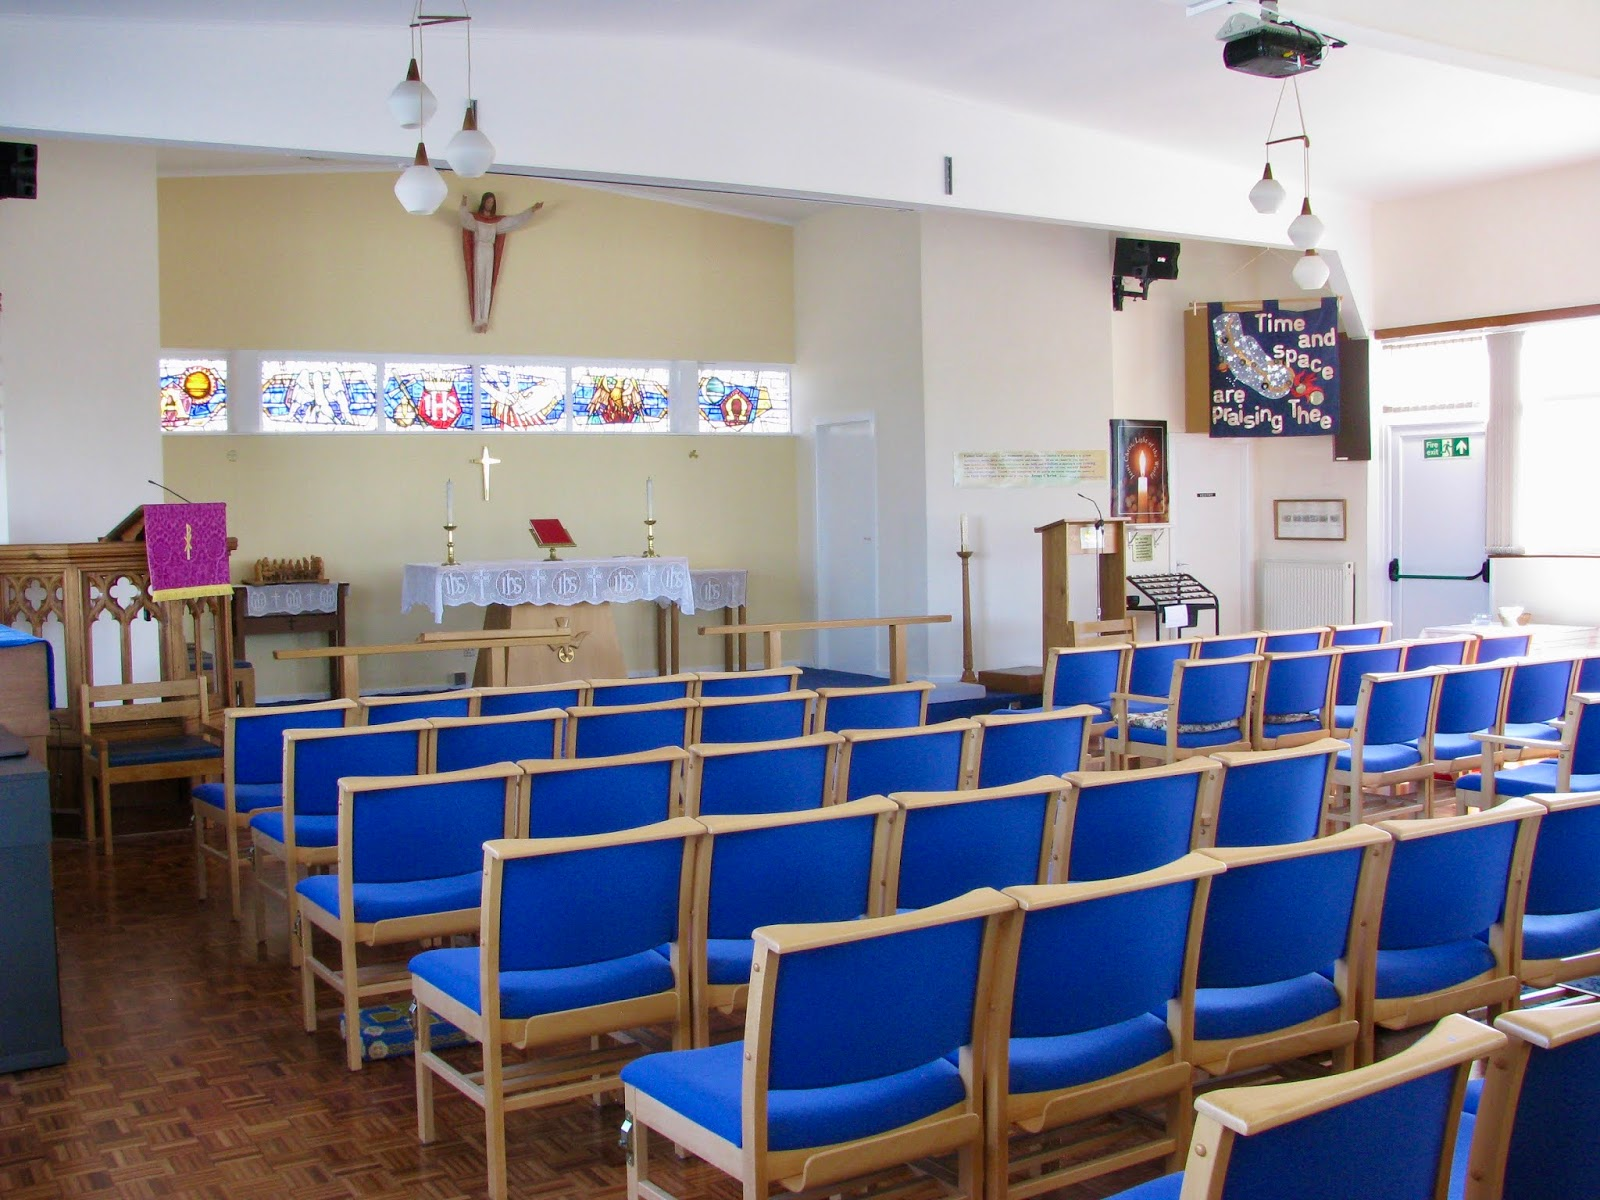 Image from Community Hall entrance to church. Parquet floor, wooden chairs with blue fabric, organ and piano to left with pulpit to left back wall, alter to centre. taken on a sunny day